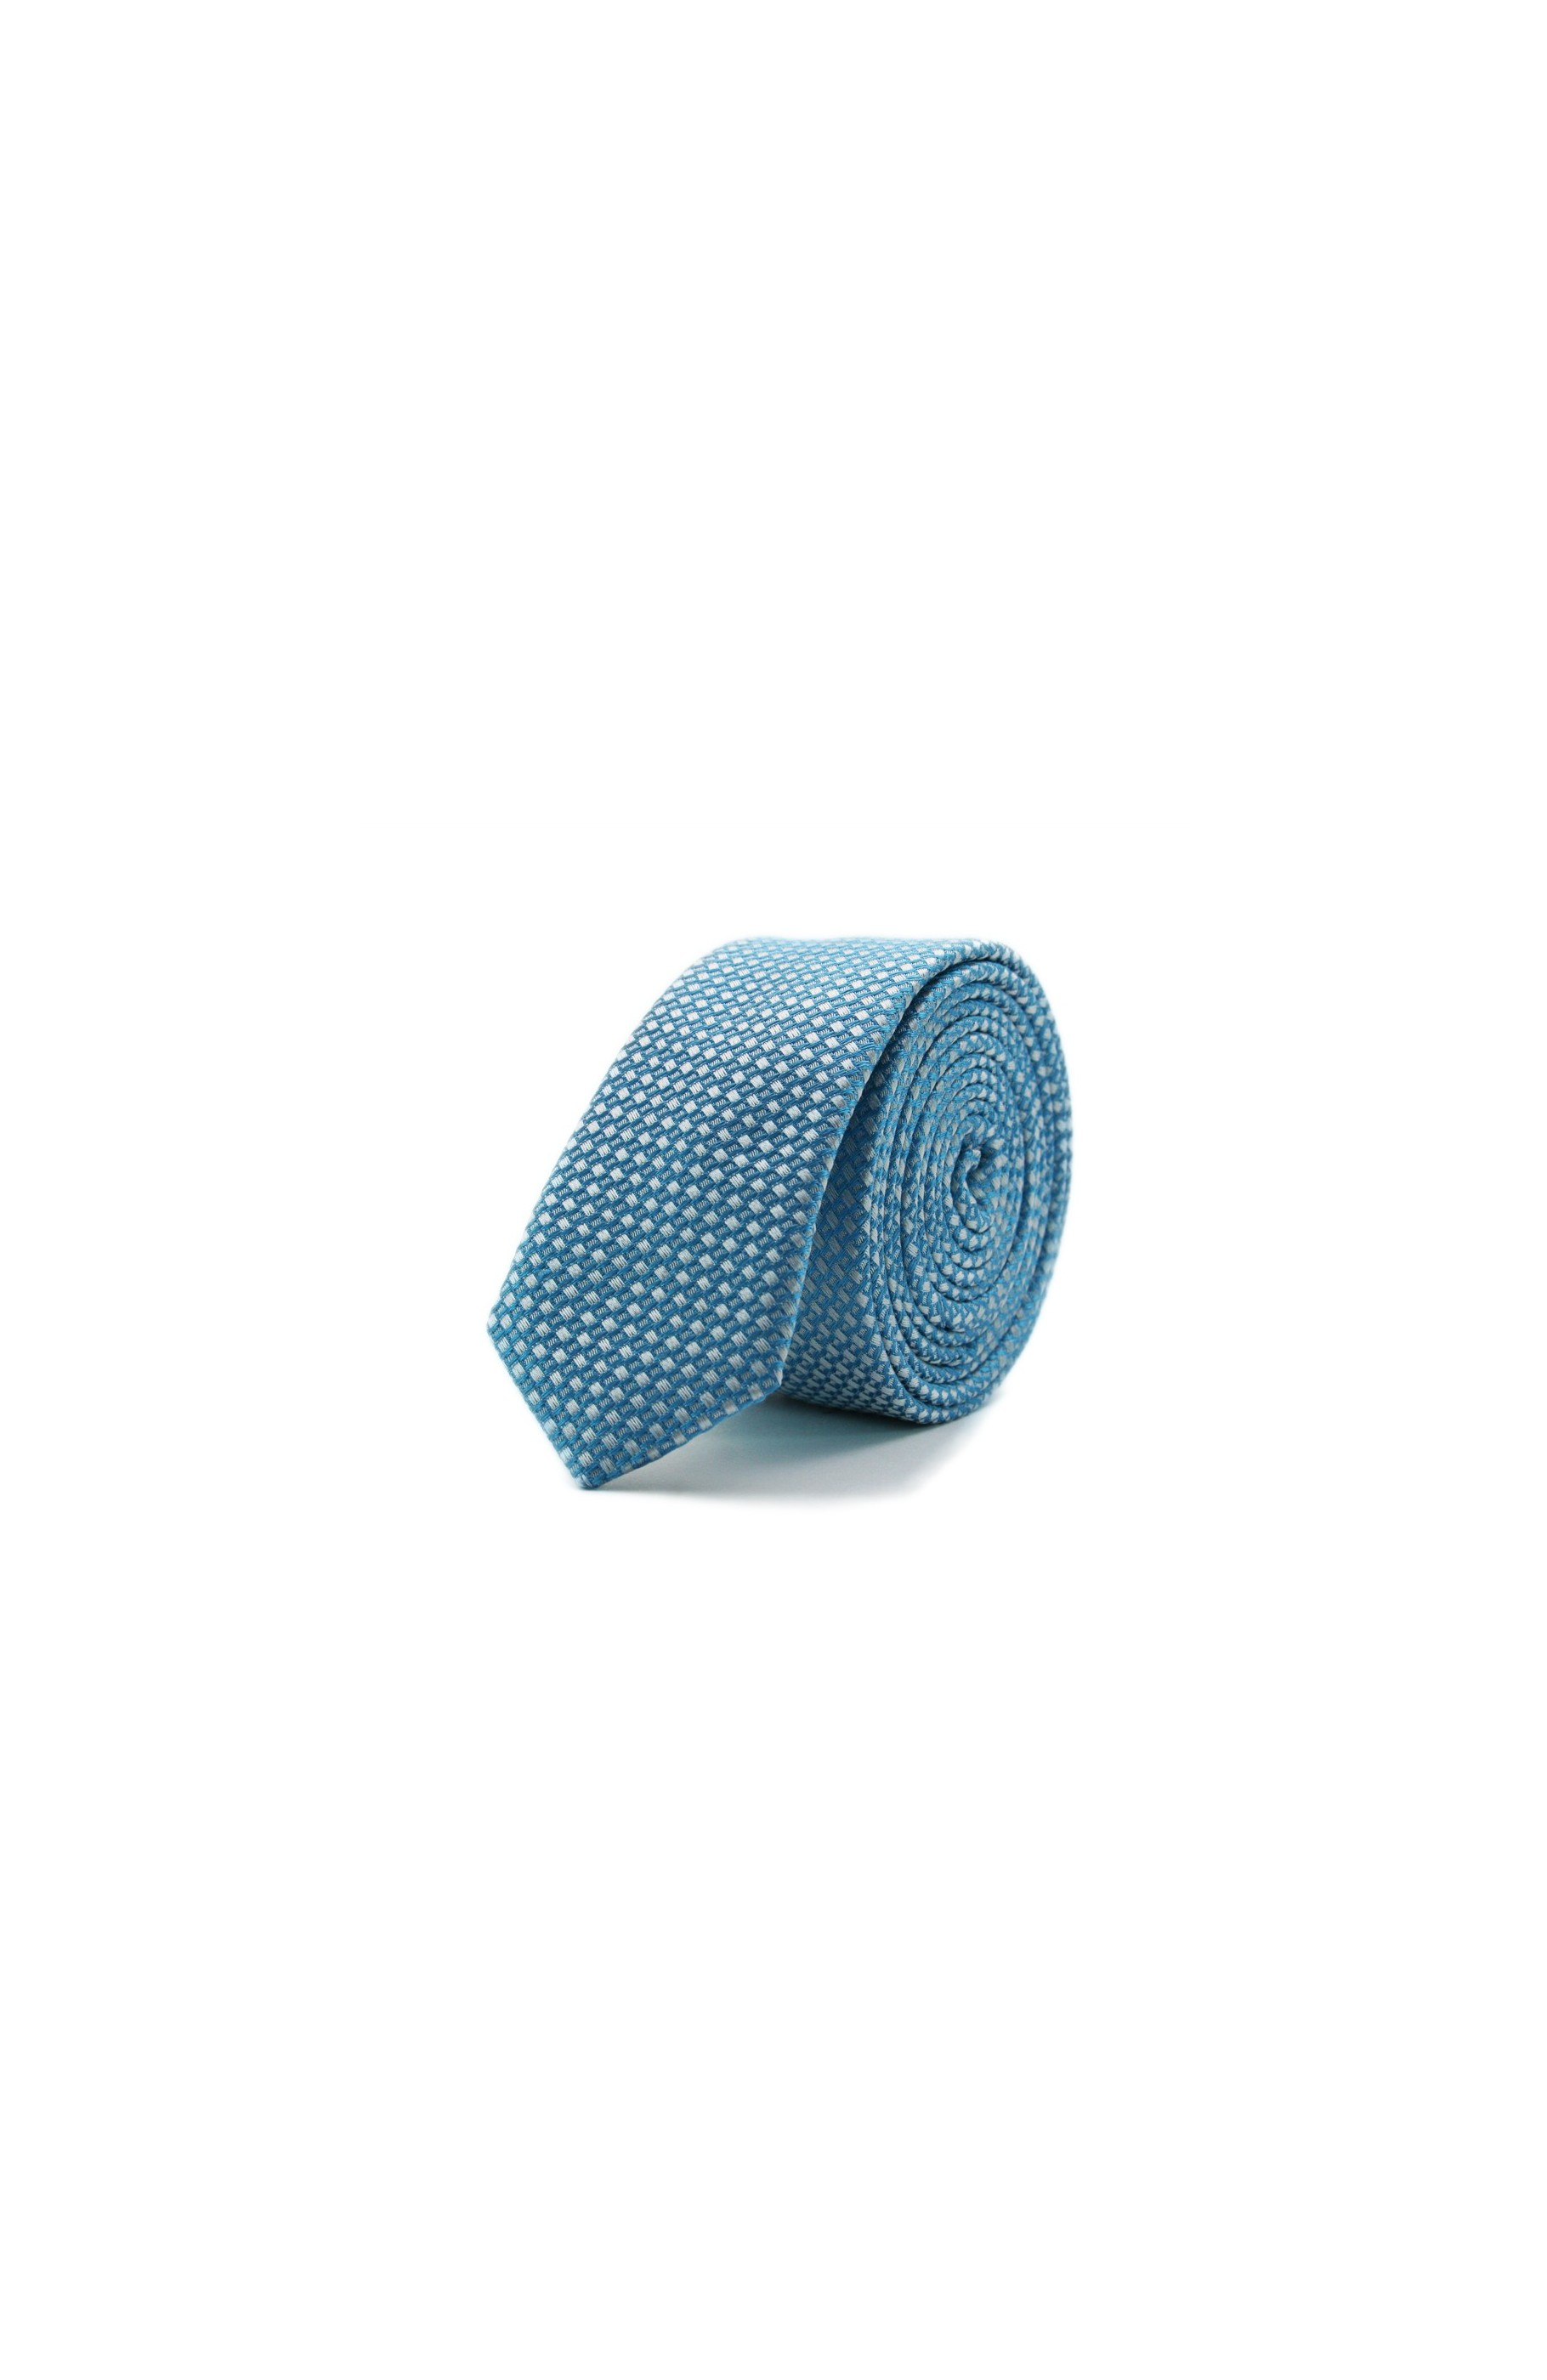 Majesté Couture Paris: Slim deepskyblue tie | Accessories -  Hiphunters Shop